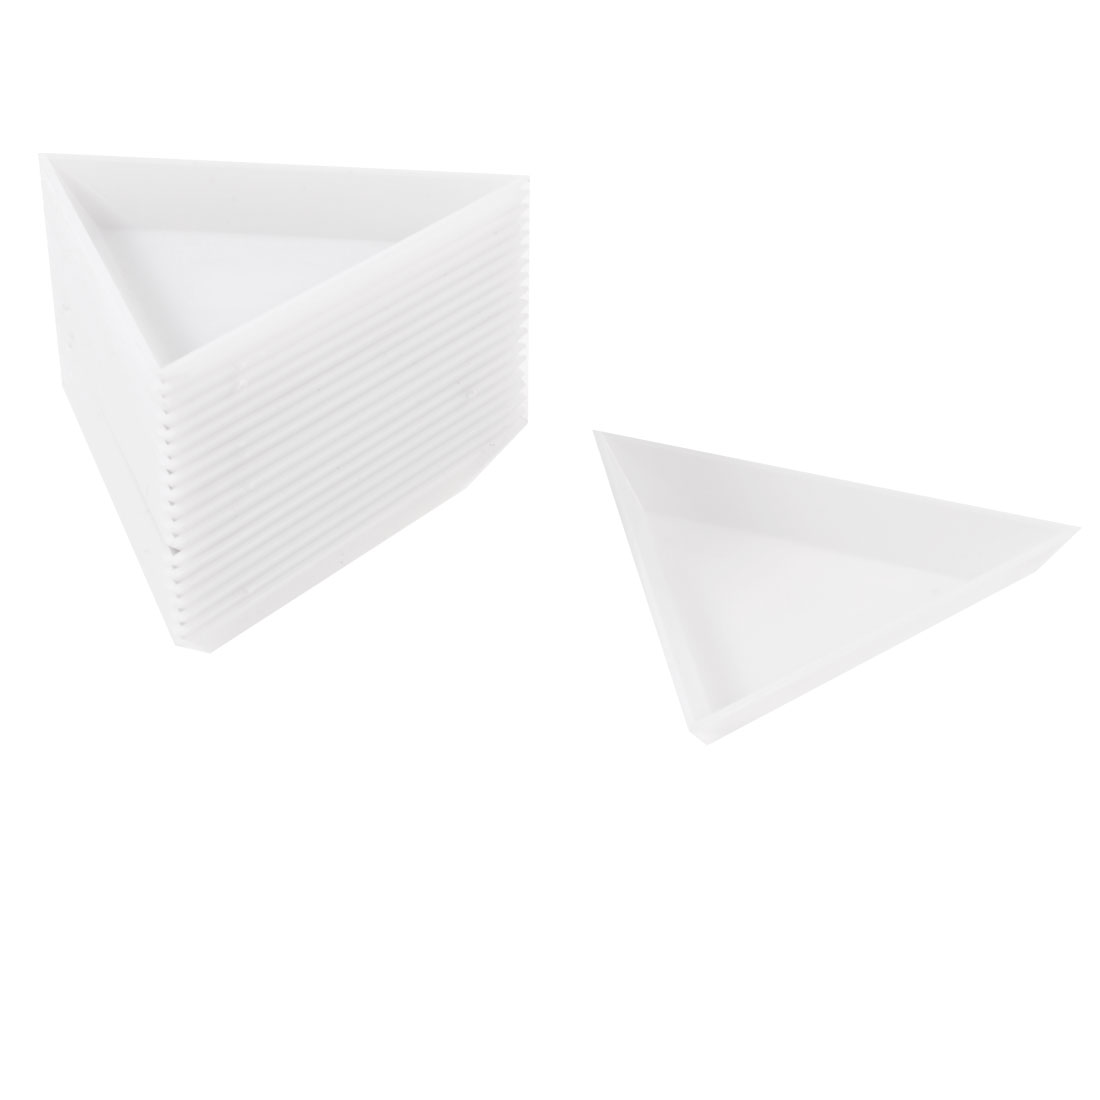 20 Pcs White Plastic Triangle Dish Small Components Collect Plate